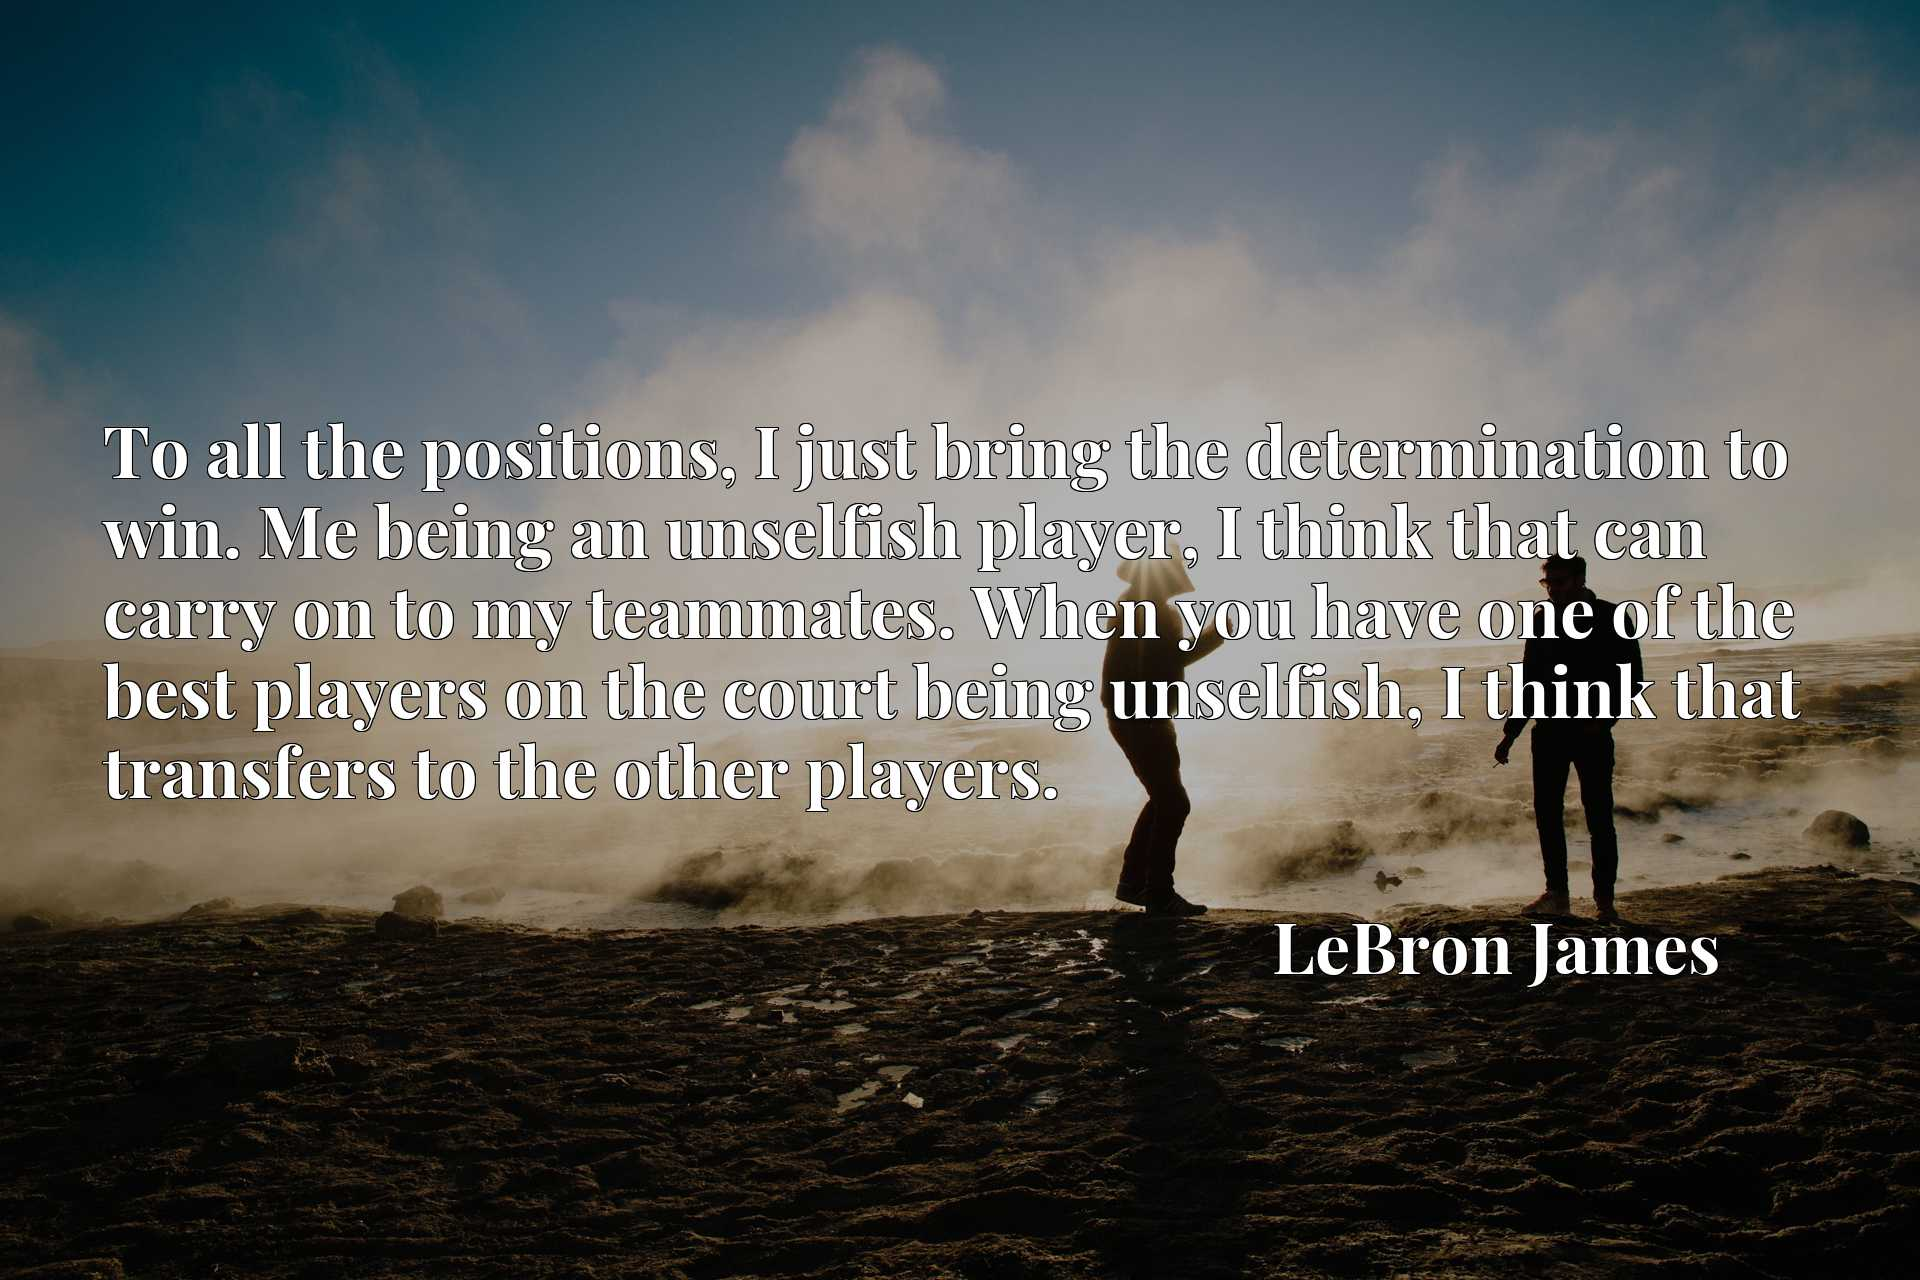 To all the positions, I just bring the determination to win. Me being an unselfish player, I think that can carry on to my teammates. When you have one of the best players on the court being unselfish, I think that transfers to the other players.